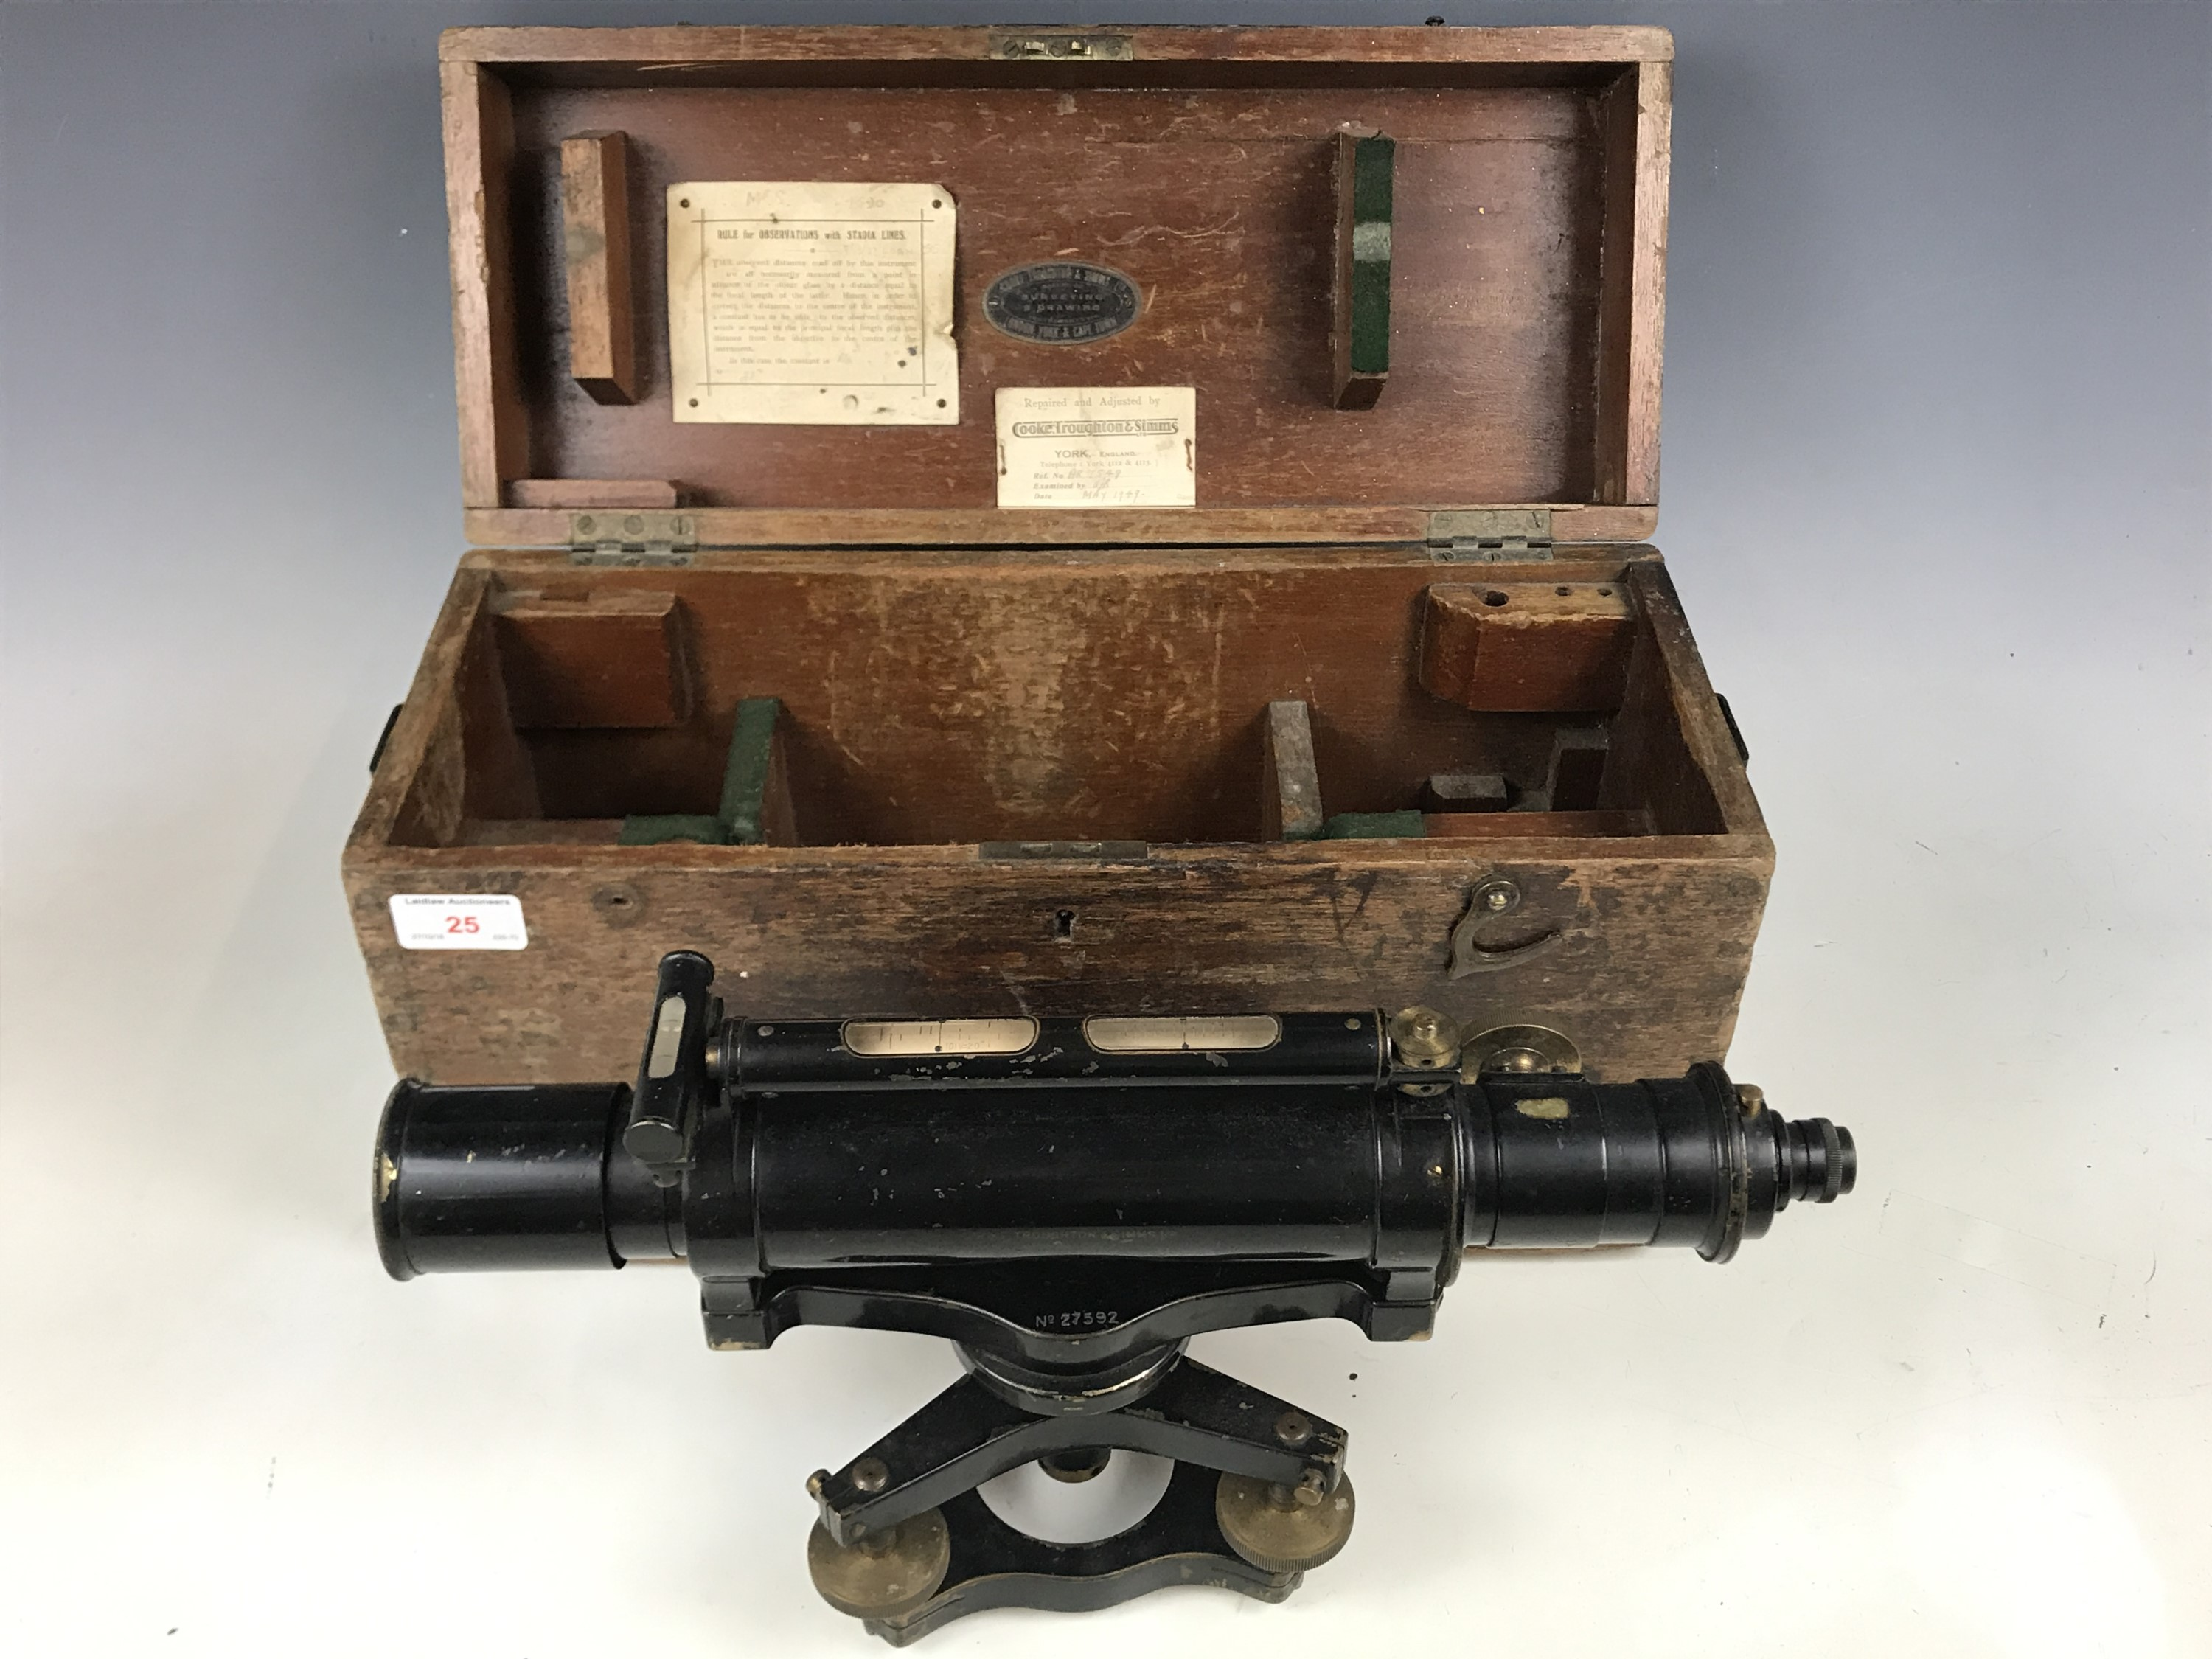 Lot 25 - A 1920s theodolite by Cooke, Troughton & Simms Ltd, No 27592, cased